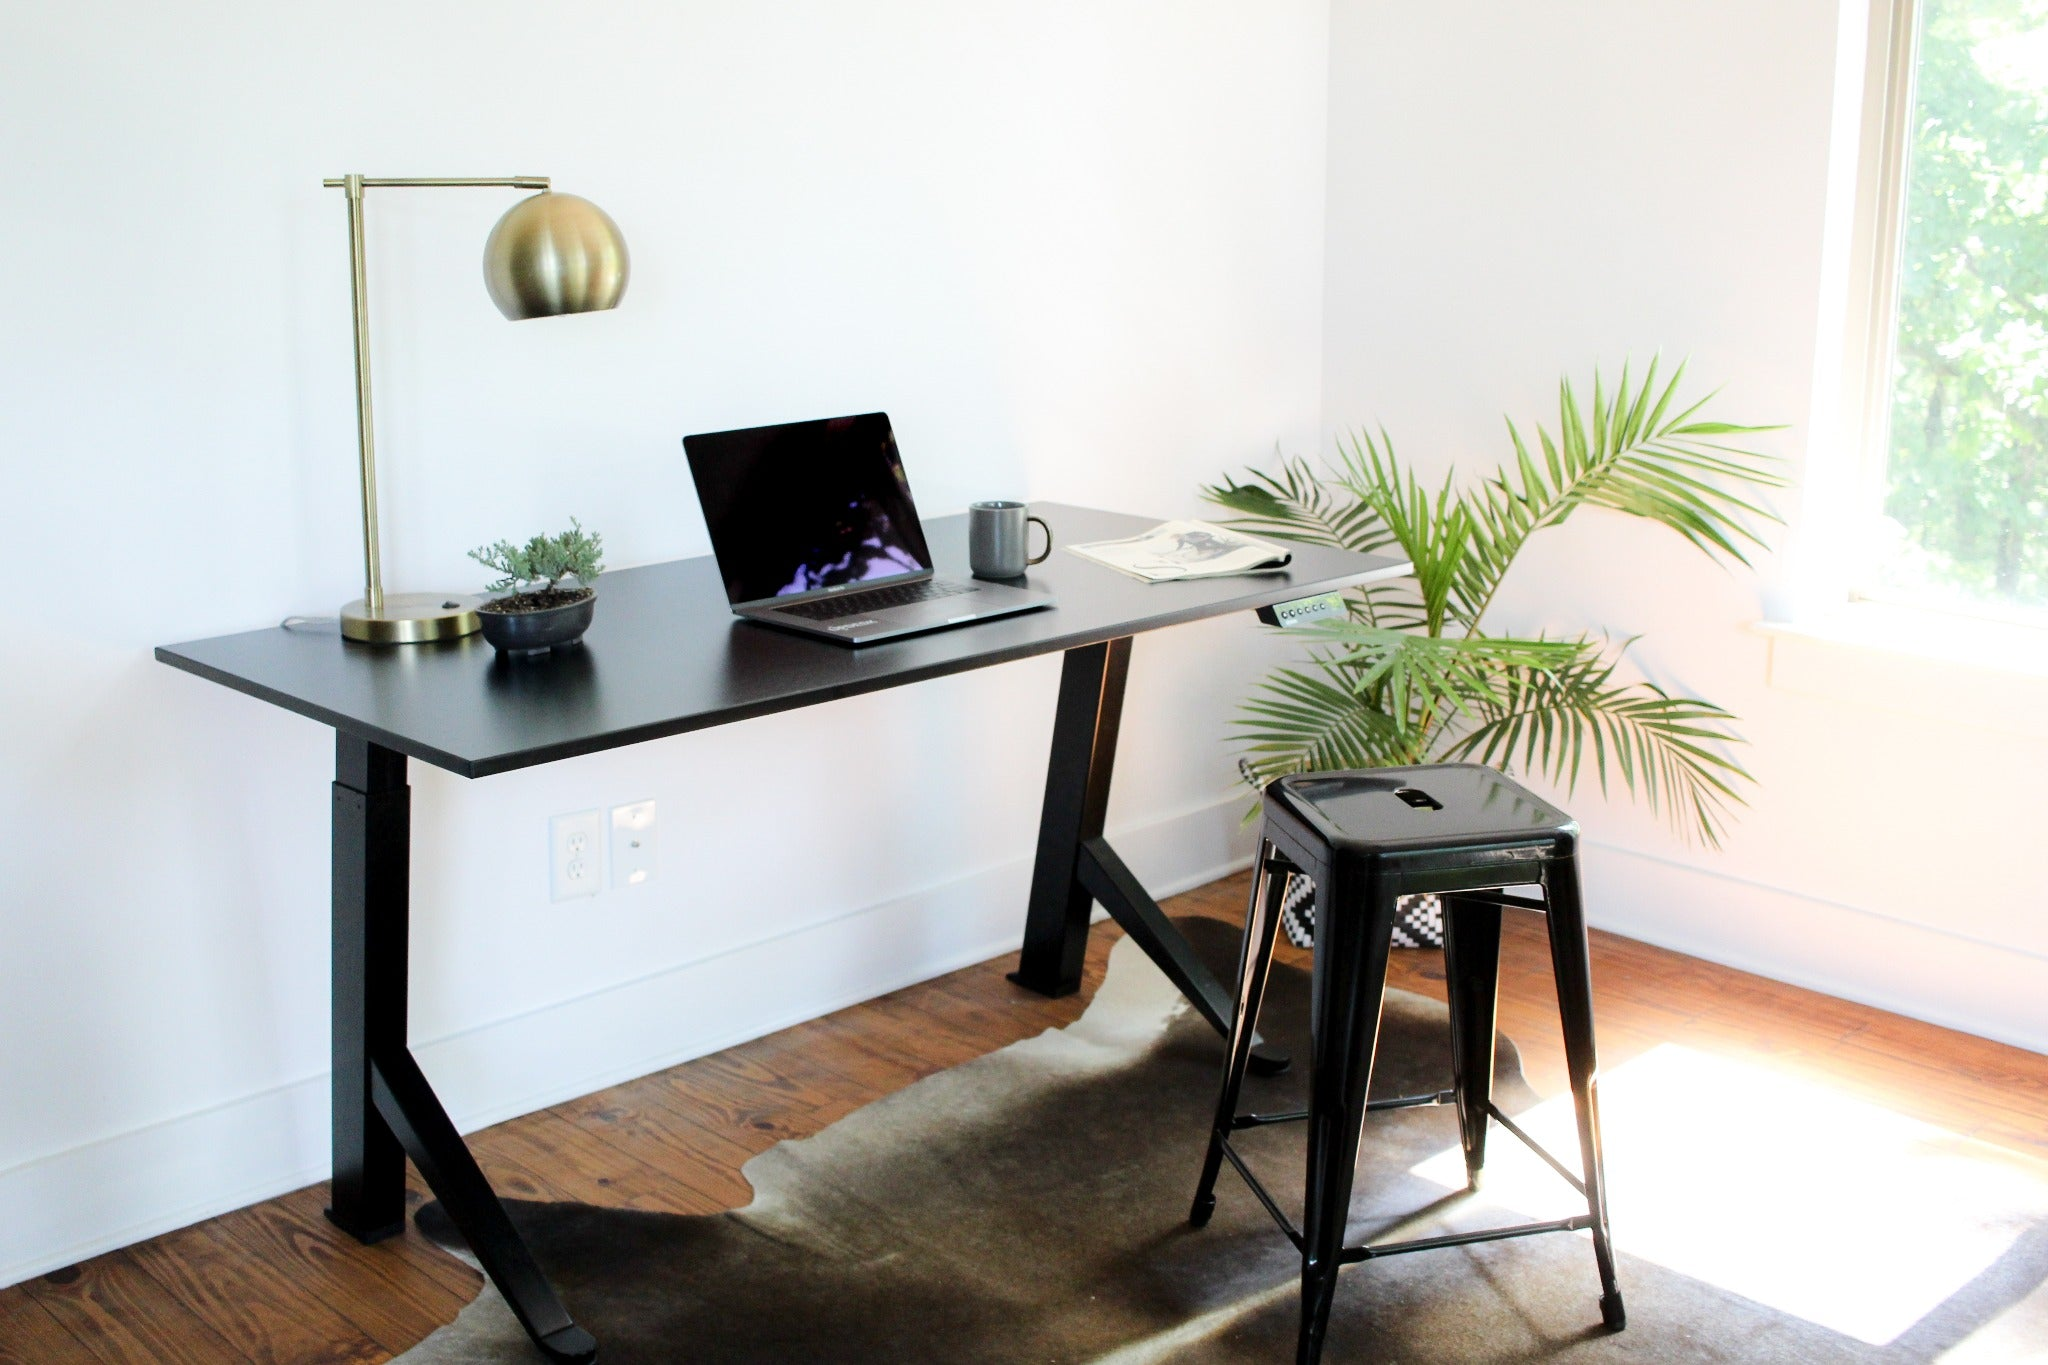 UPDESK Home Electric Adjustable Standing Desk